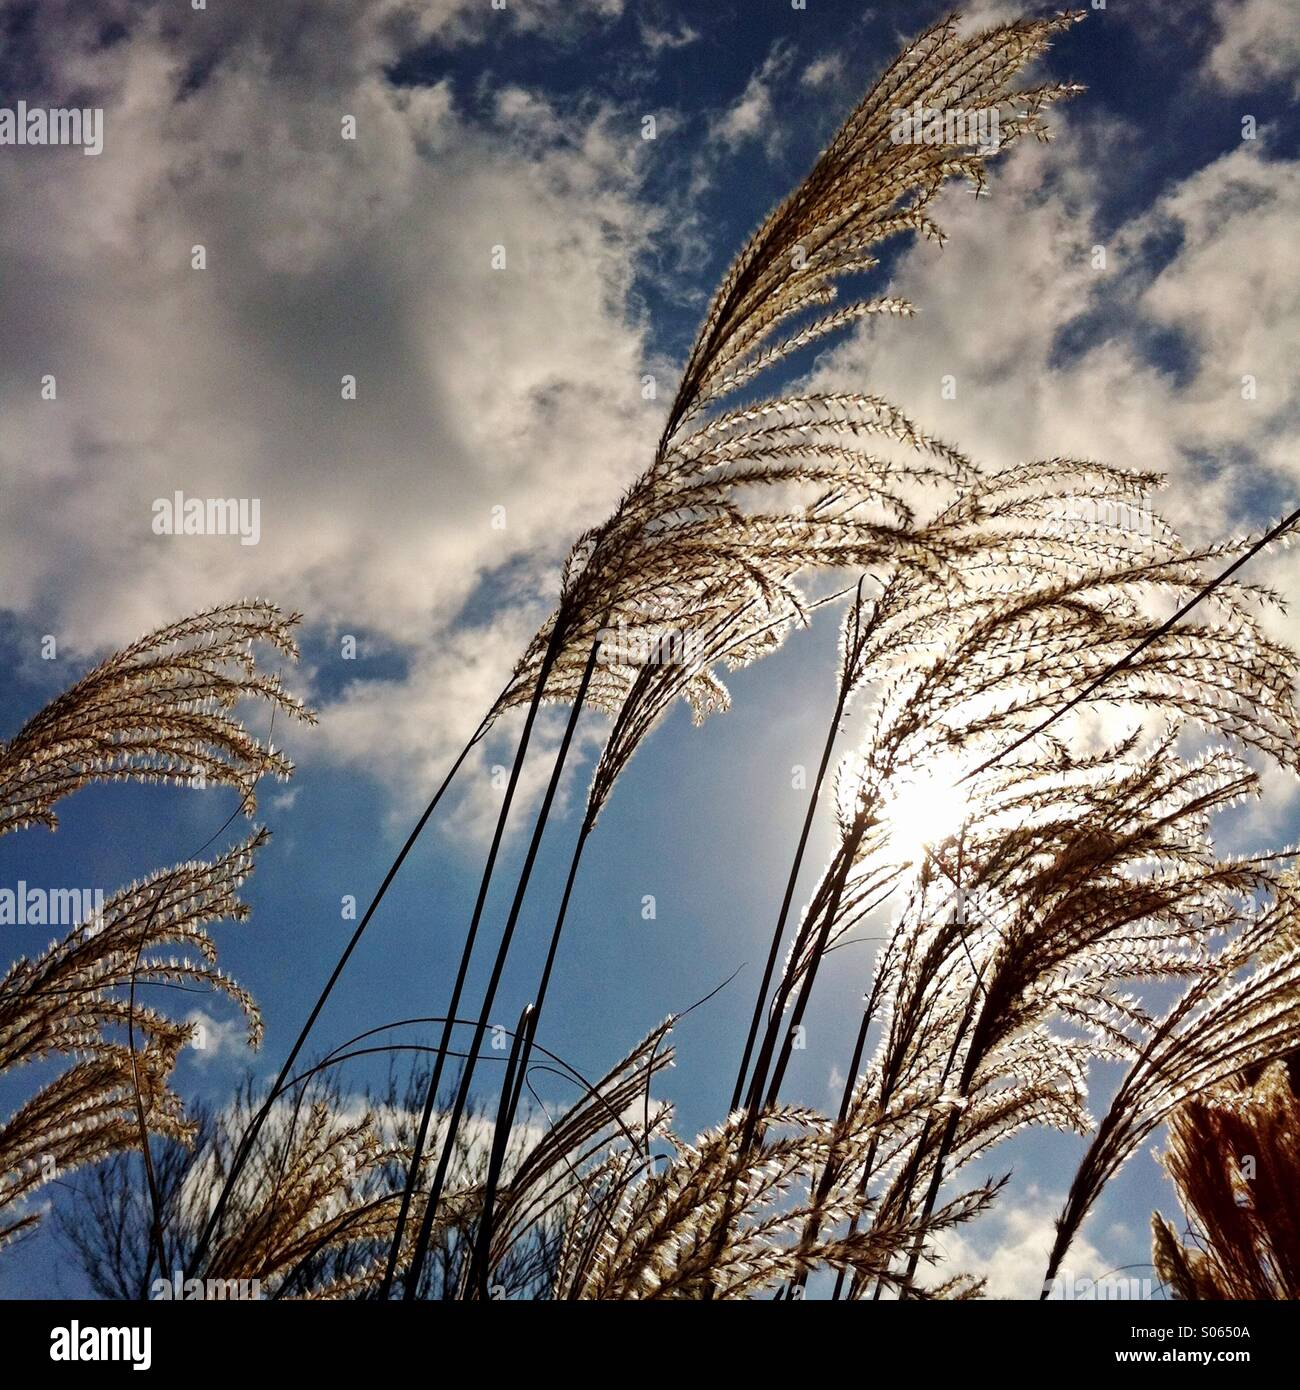 Ornamental grasses backlit by the sun. - Stock Image